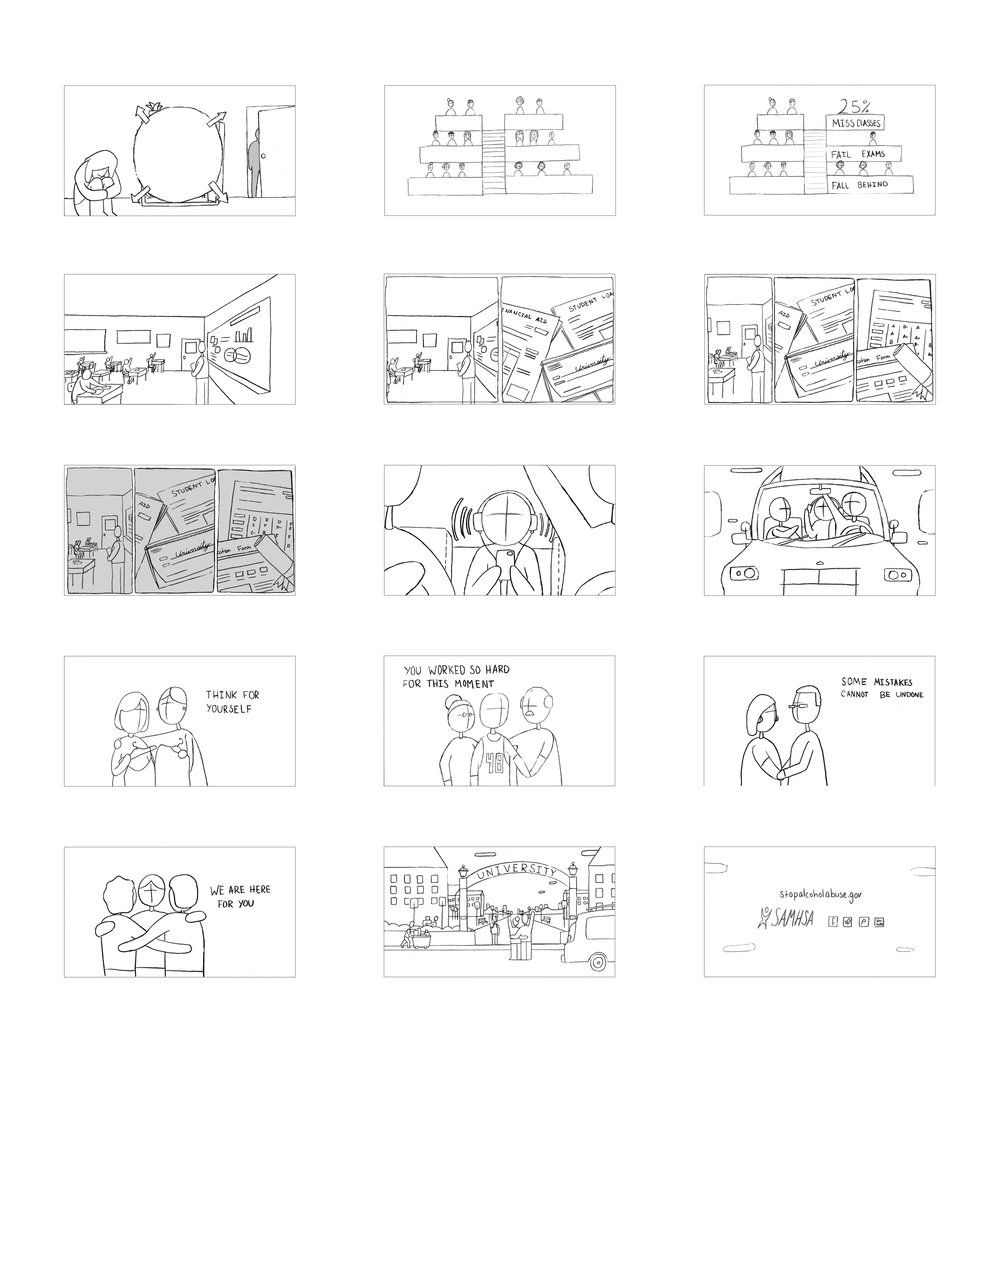 UAD_Transition_Storyboard_02_v01.jpg